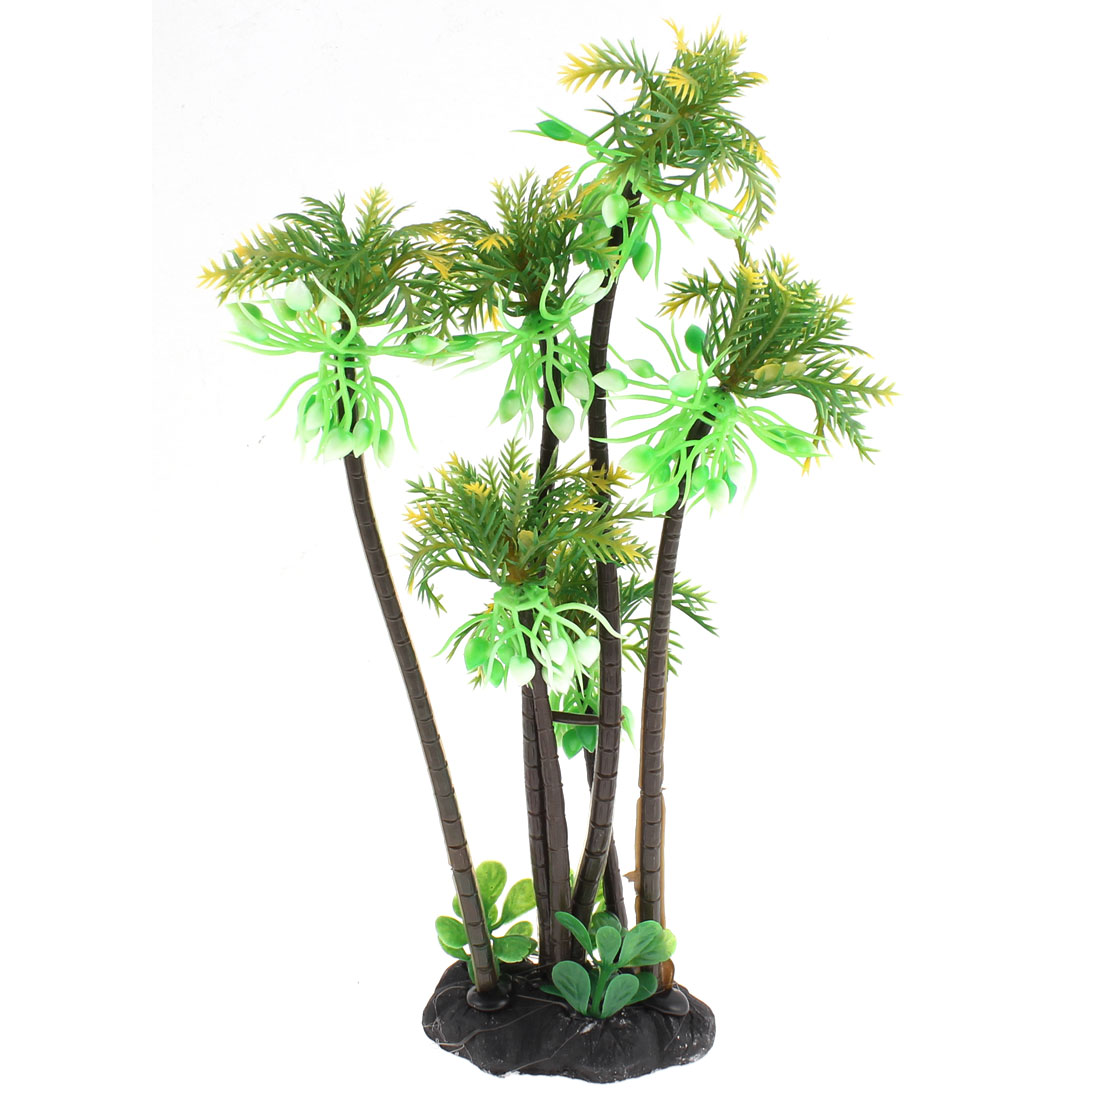 Aquarium Plastic Imitated Coconut Tree Plant Decoration 27cm High